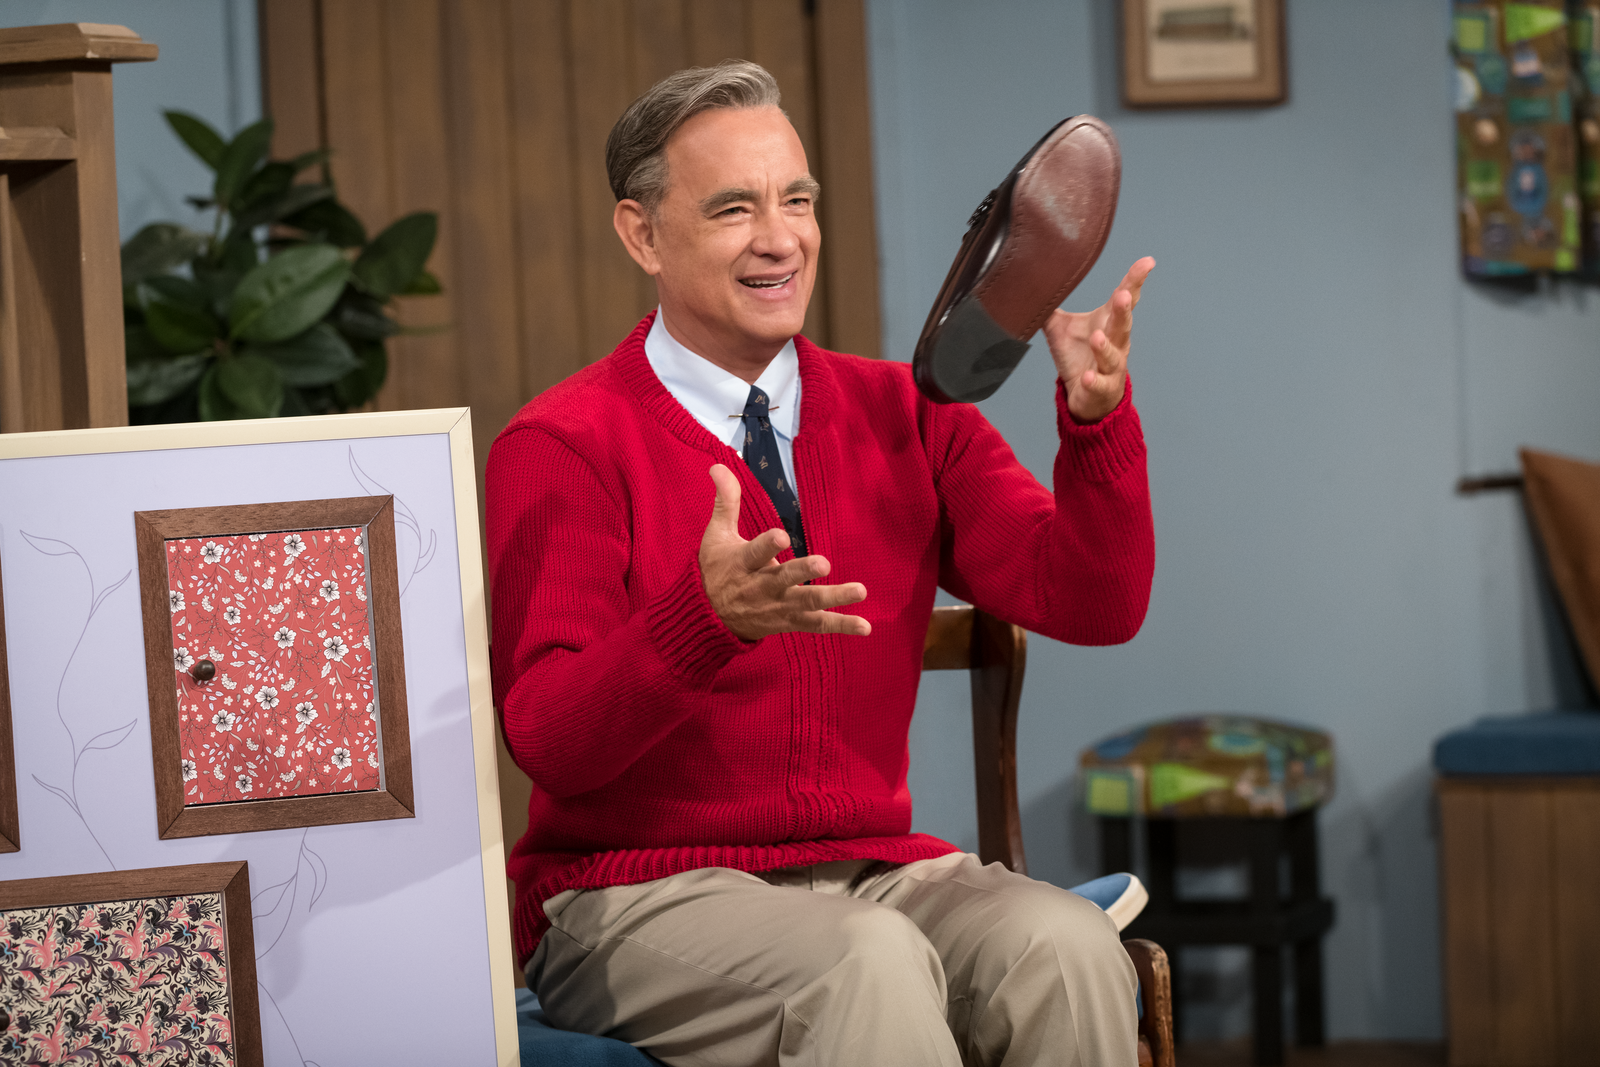 Two-time Oscar®-winner Tom Hanks portrays one of America's most cherished icons, Mister Rogers, on the set of TriStar Pictures' Untitled Mr. Rogers / Tom Hanks Project.{ }| Photo: Sony Pictures Entertainment